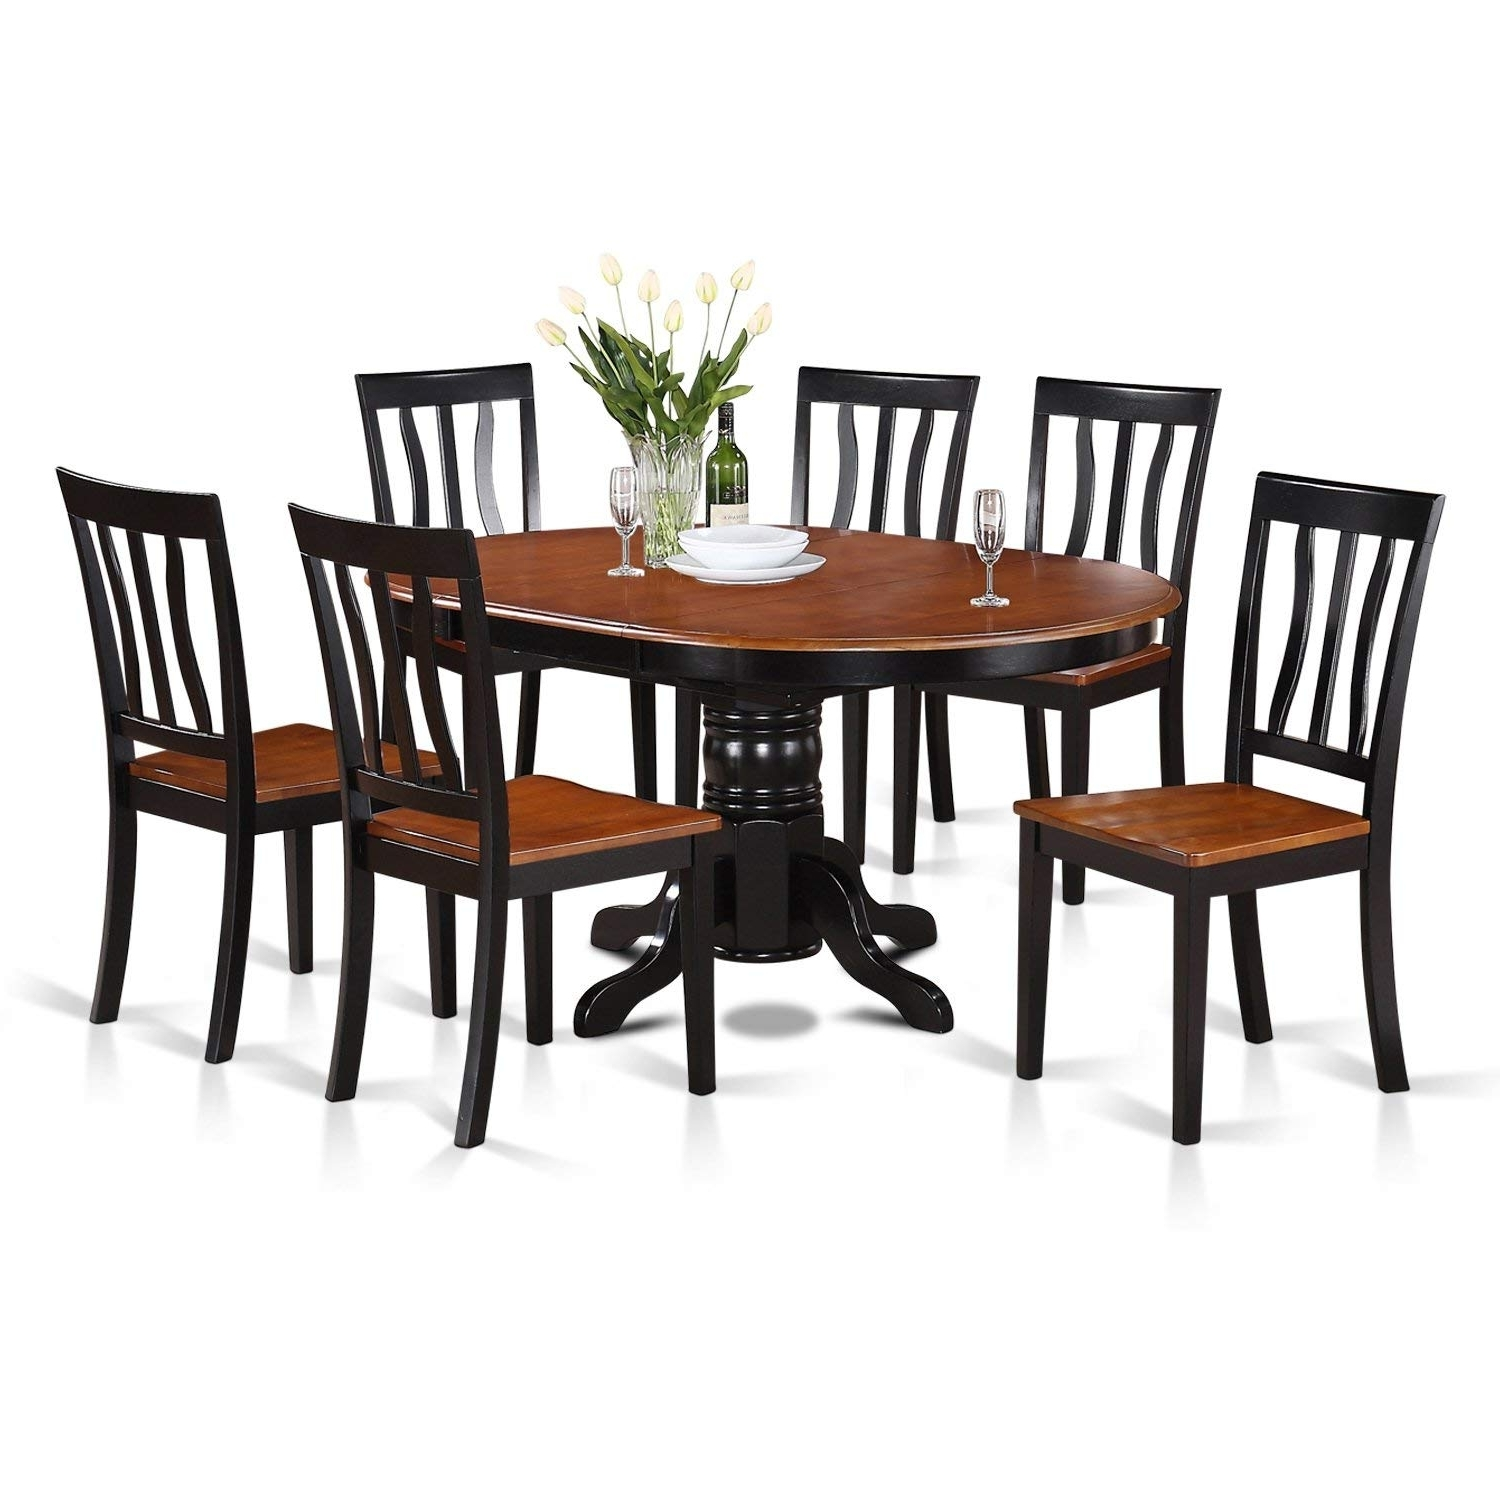 Jaxon Grey 6 Piece Rectangle Extension Dining Sets With Bench & Uph Chairs for 2017 Amazon: East West Furniture Avat7-Blk-W 7-Piece Dining Table Set